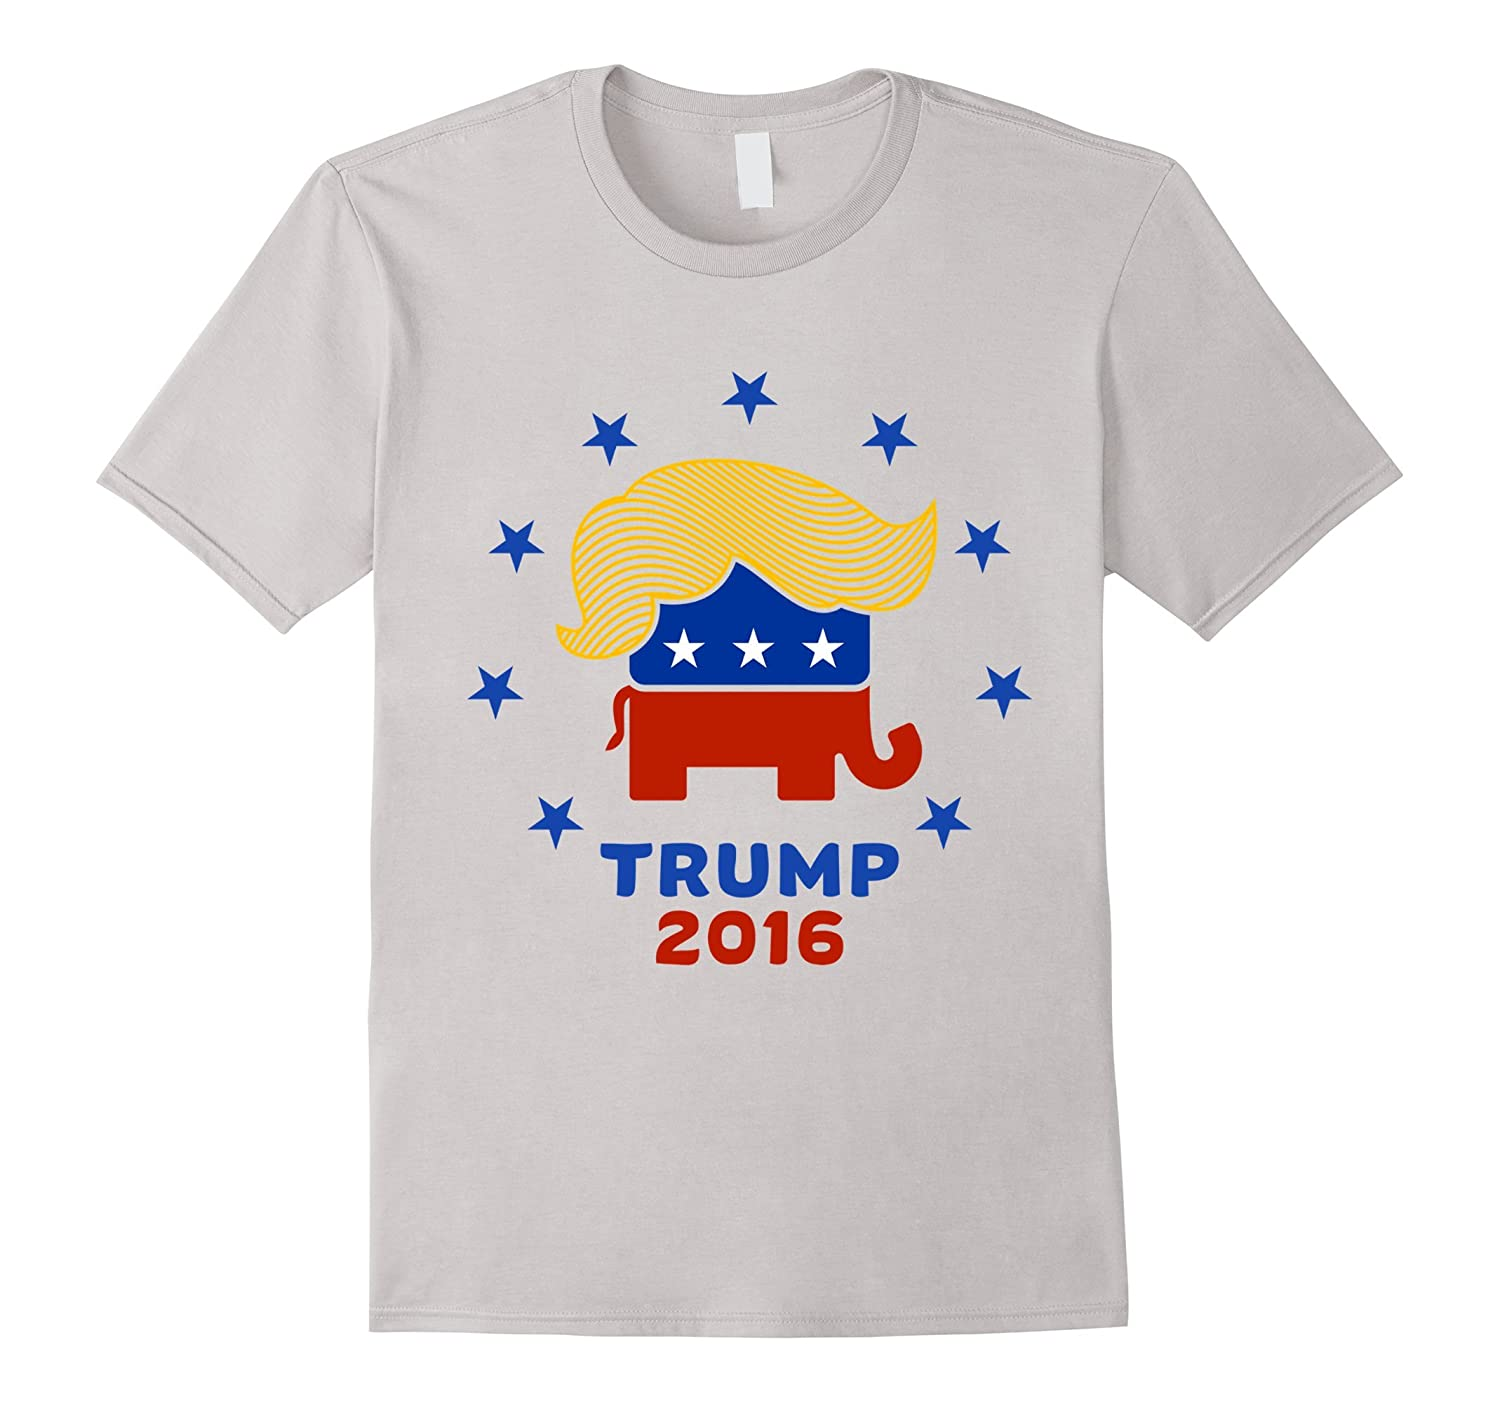 Donald trumps hair on iconographic elephant t shirt design for Hair salon t shirt designs